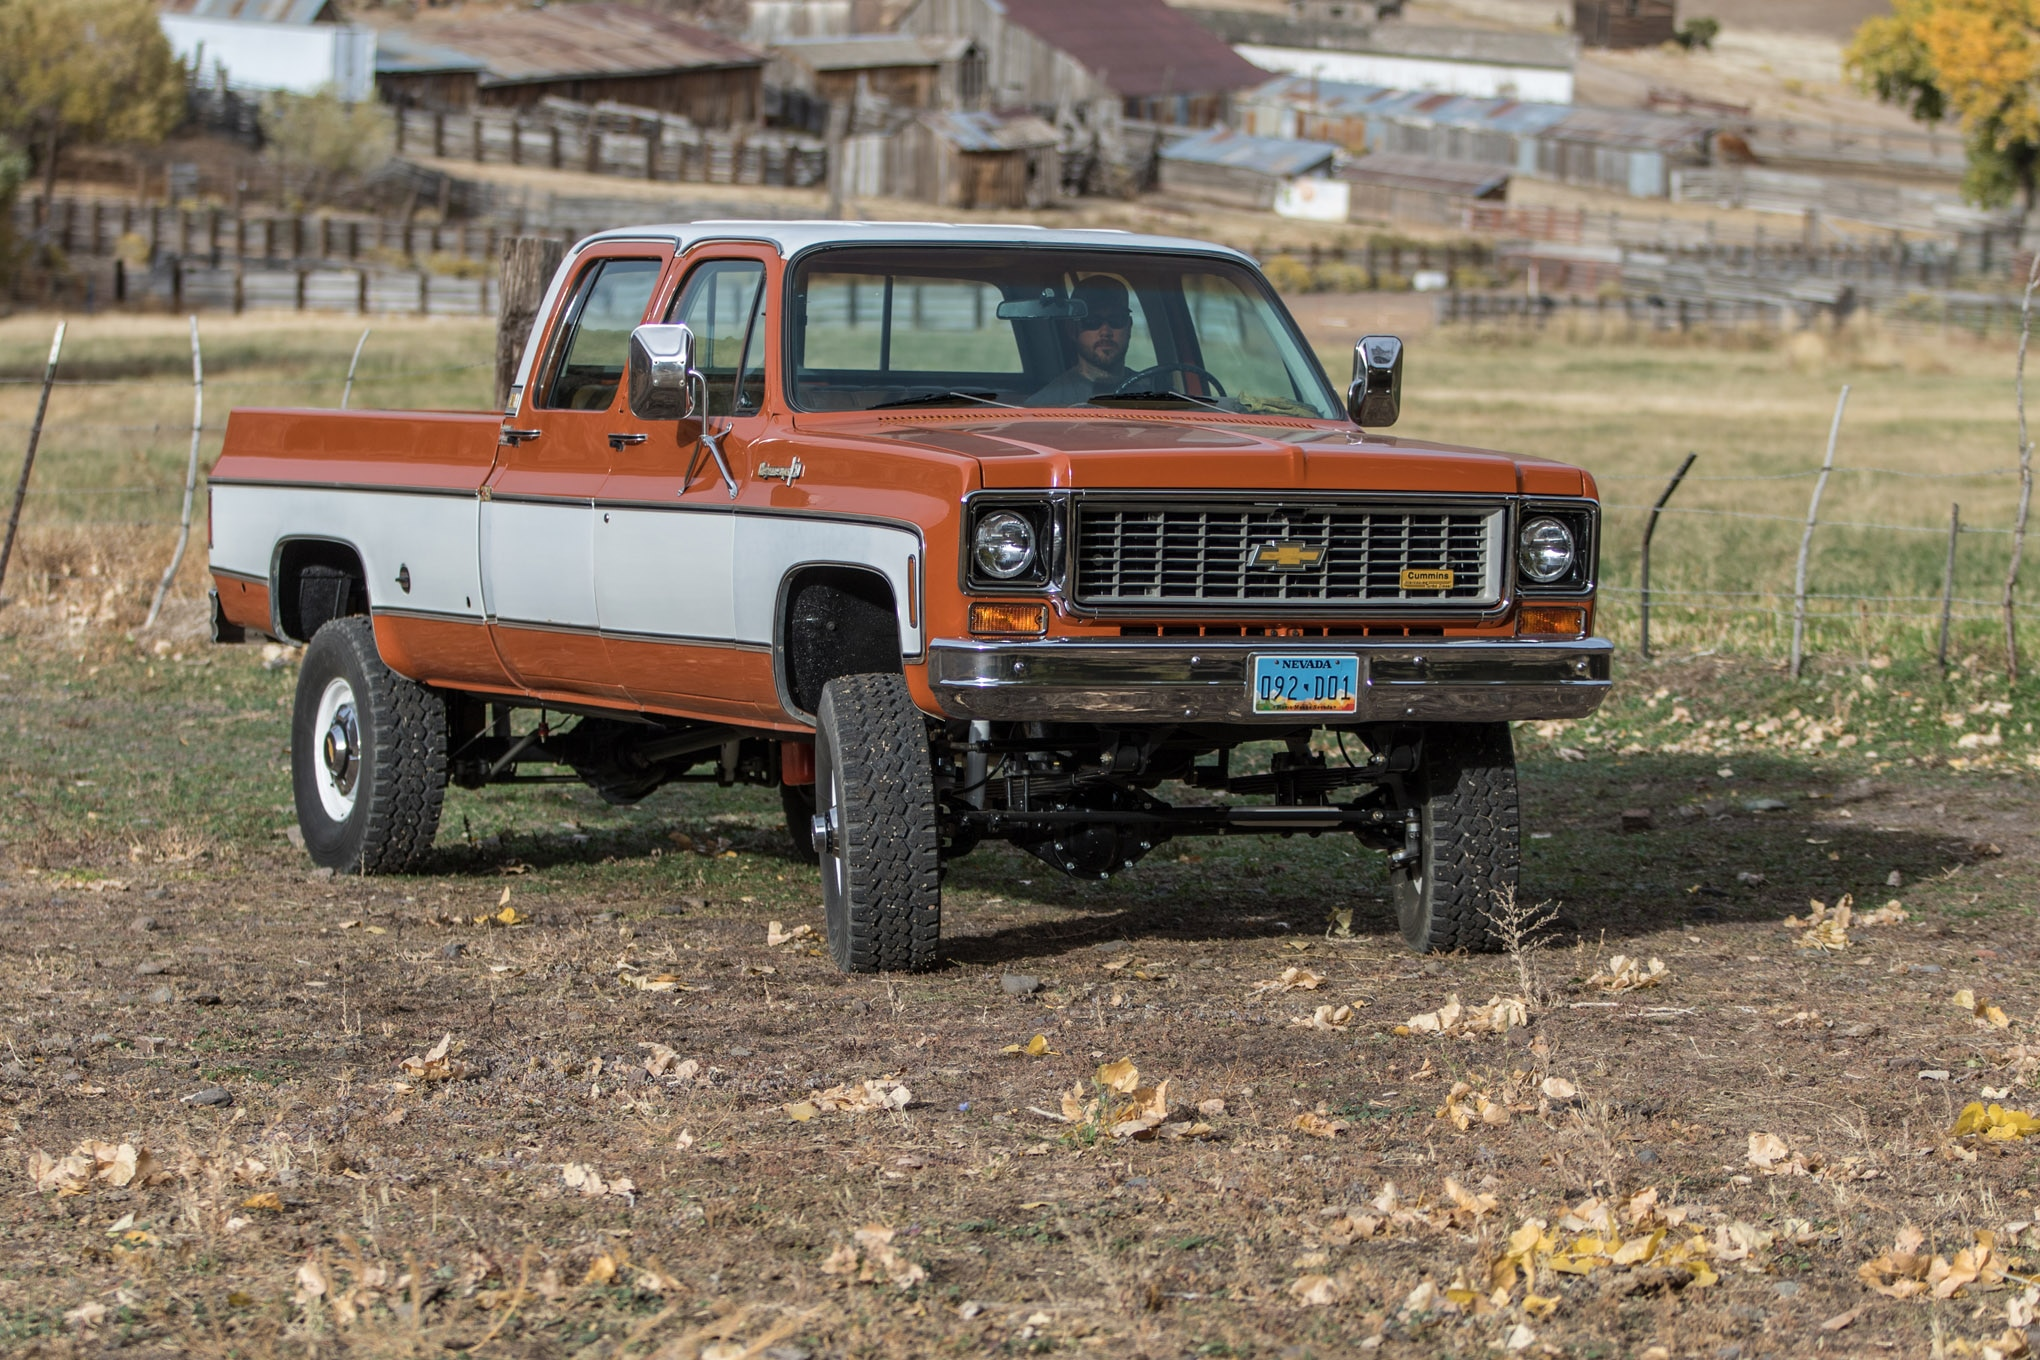 1974 Chevy C20: Why Buy a New Truck When You Can Build